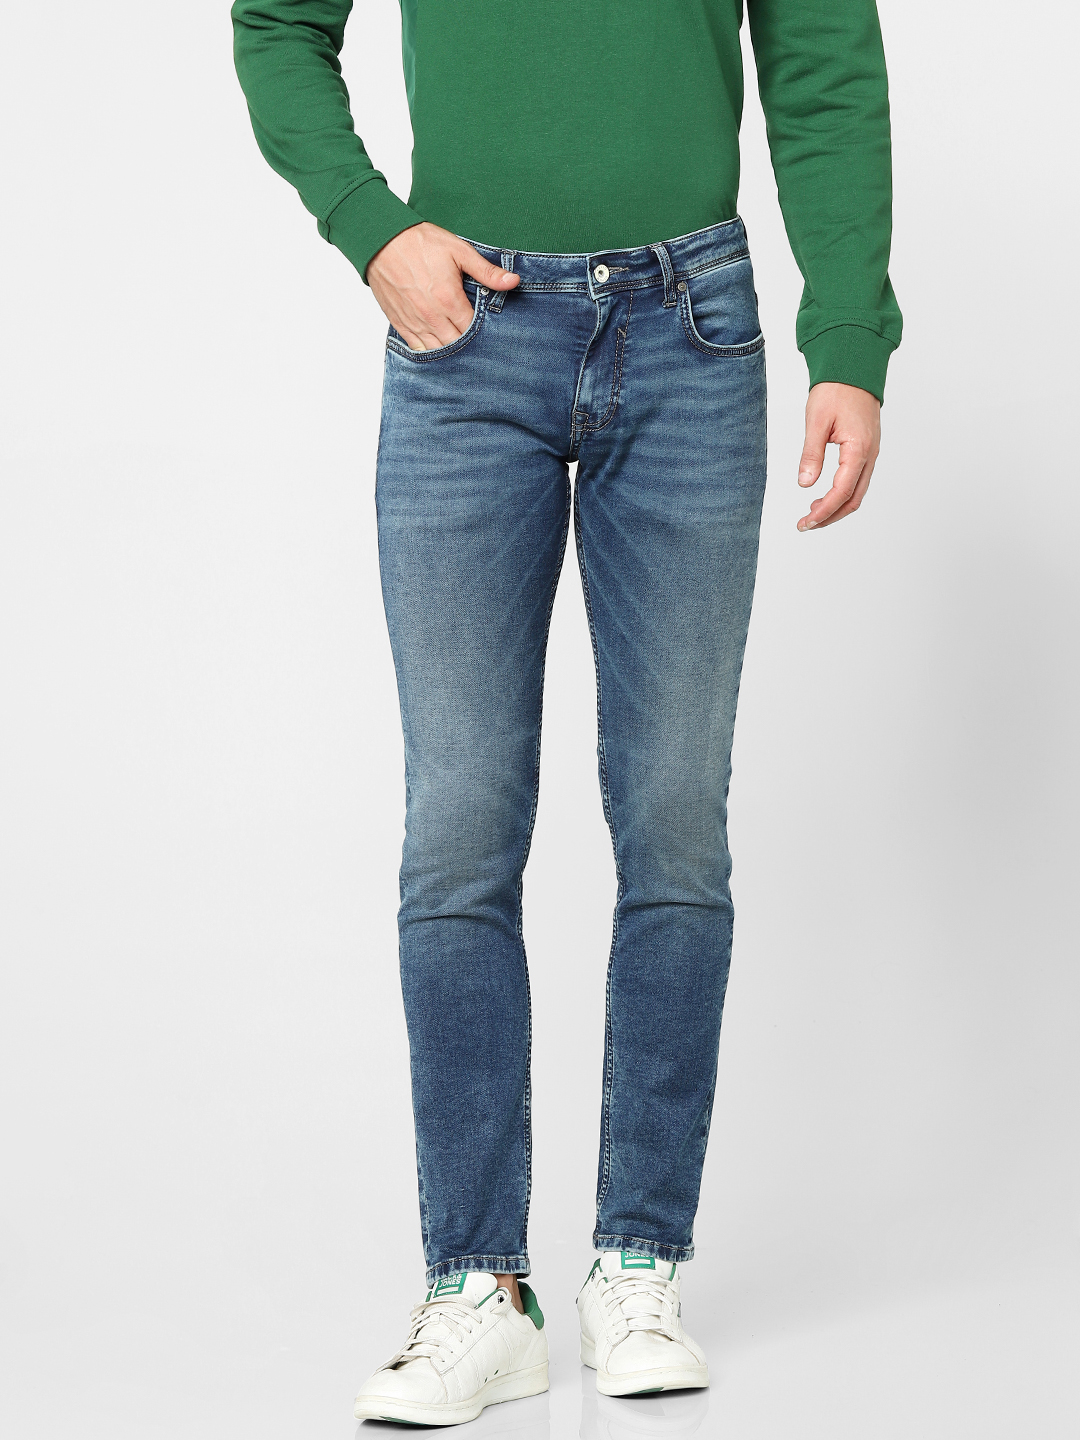 celio | Slim Fit Knitted Jeans